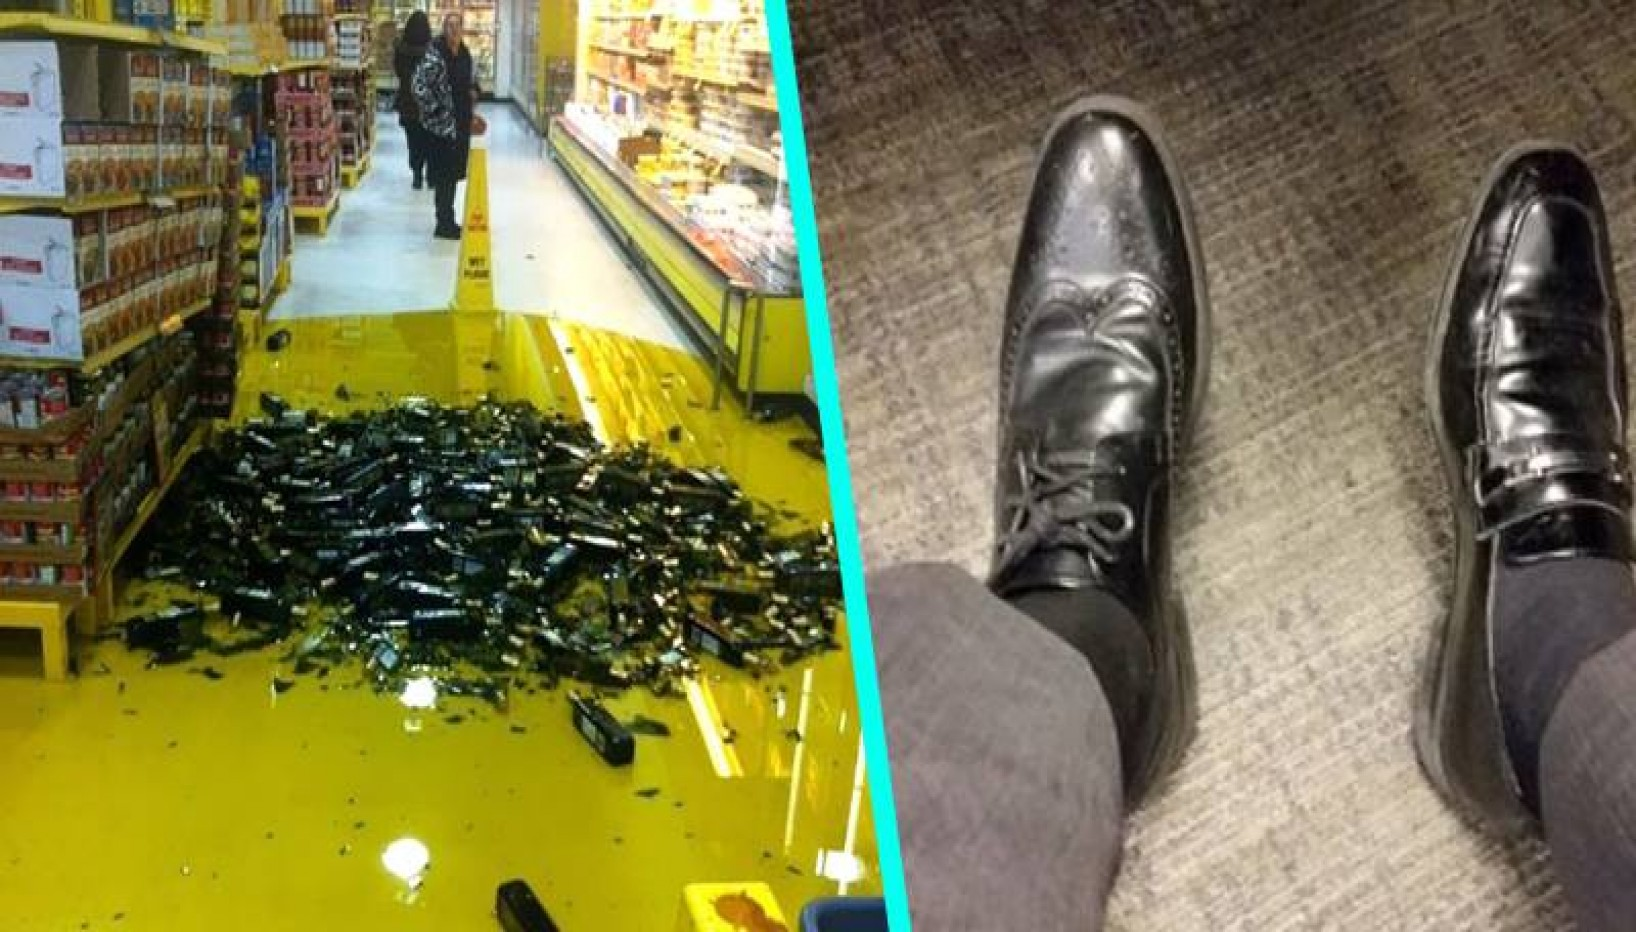 Think You're Having A Bad Day? These People Are Having It Way Worse!